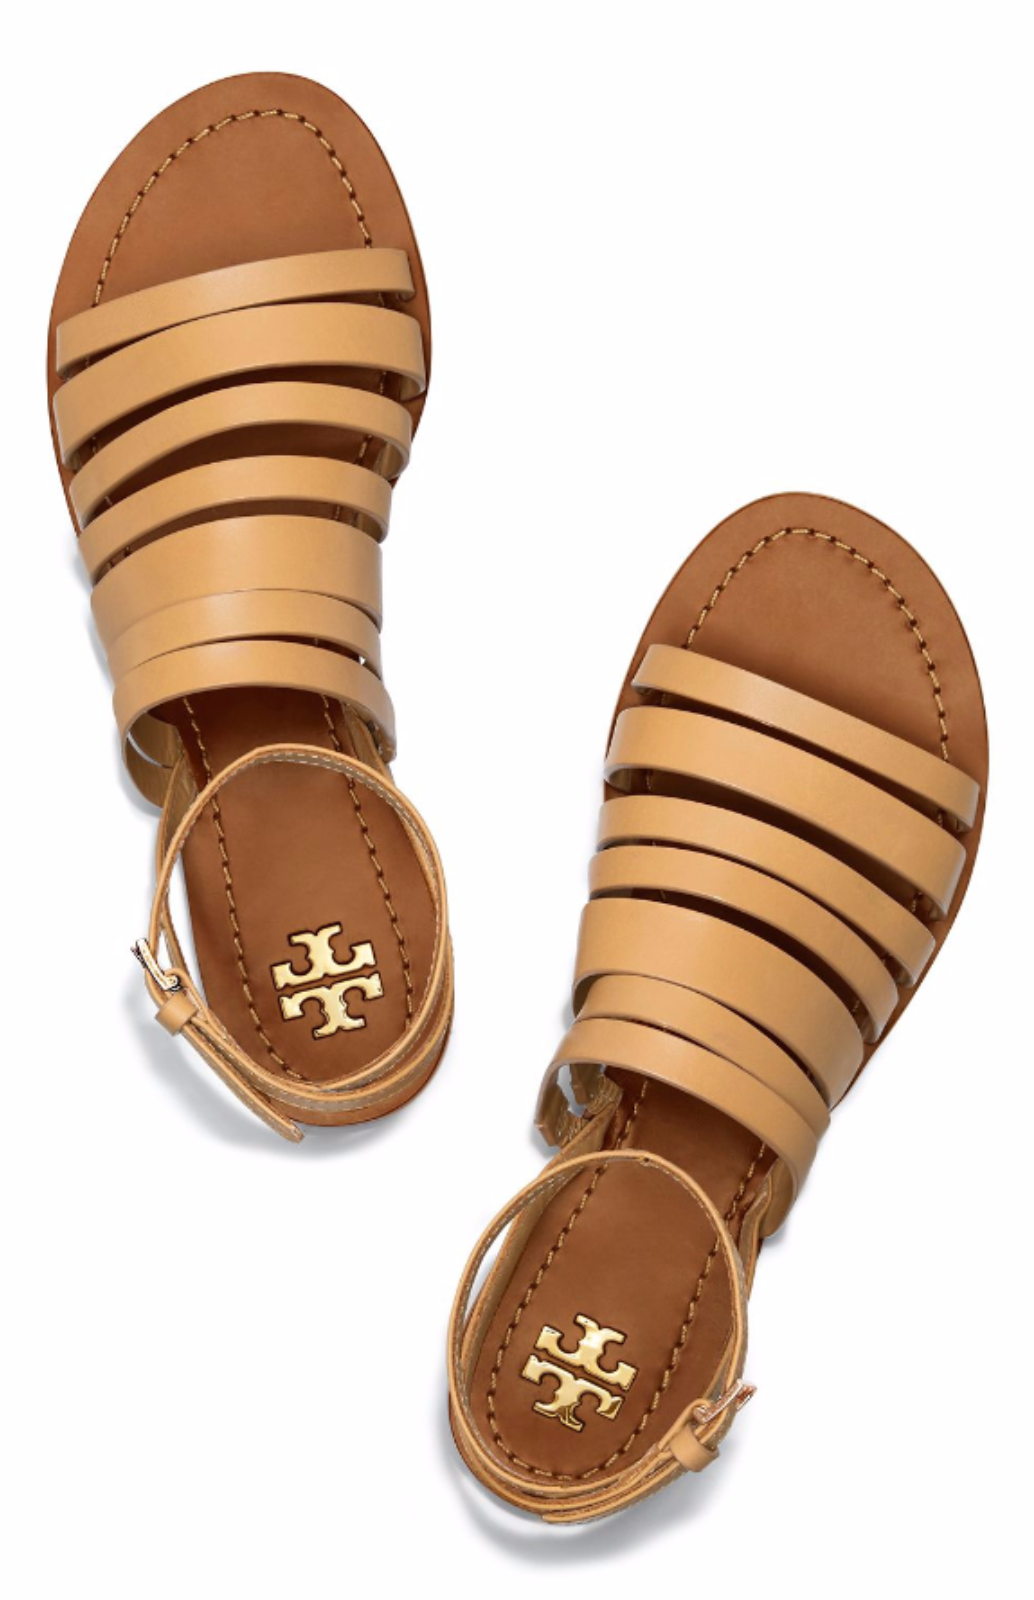 60a7c9c3fa830b Tory Burch Patos Ankle Strap Sandal